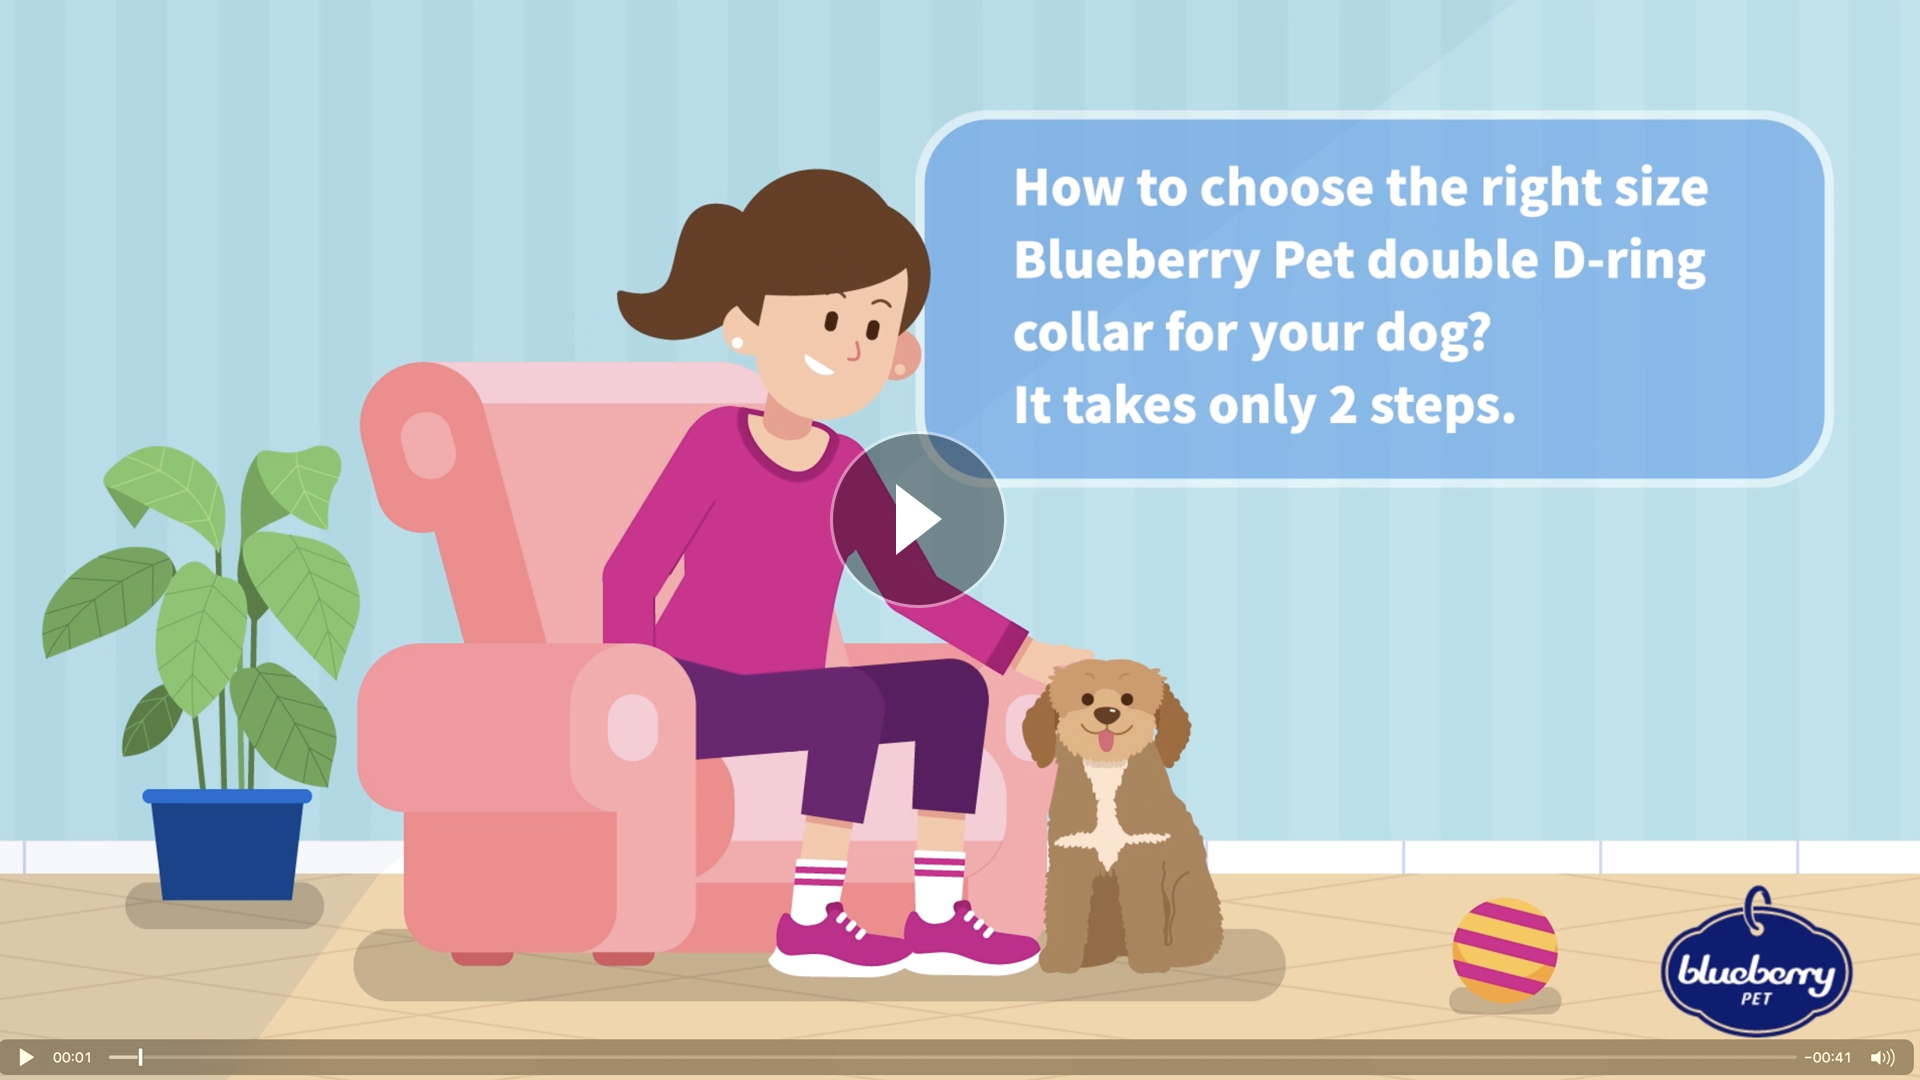 Blueberry Pet 10+ Colors Safe & Comfy Multi-Colored Stripe Dog Collars, 3M Reflective Options Available